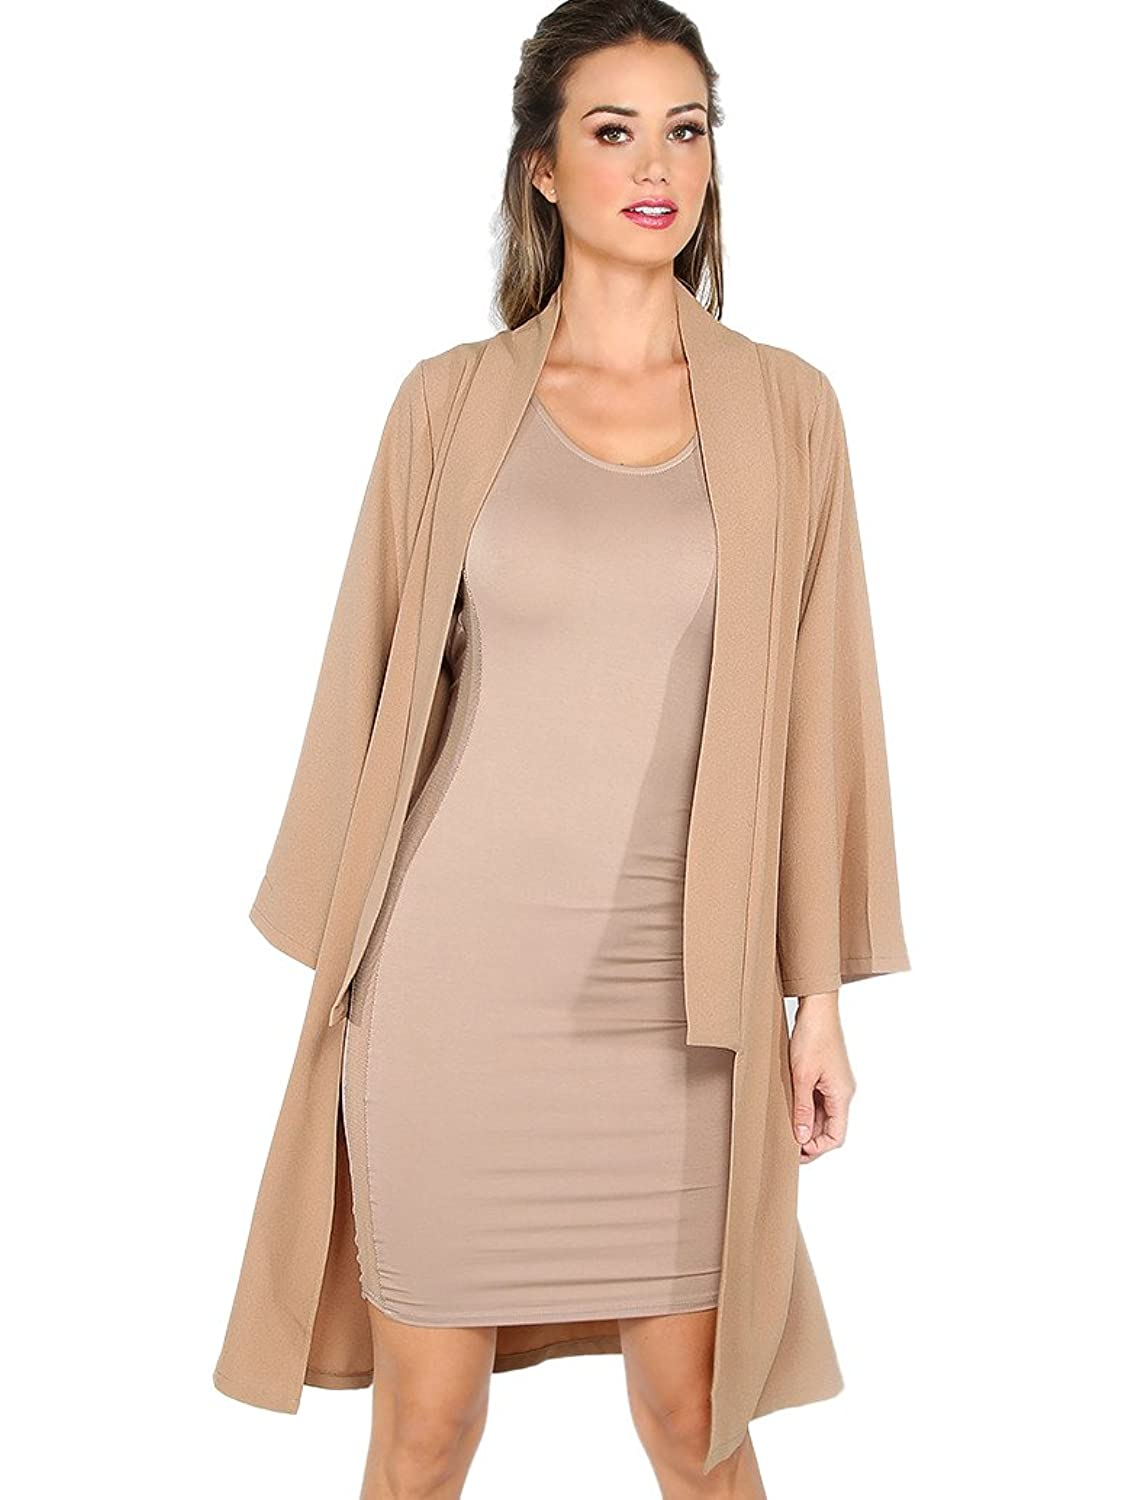 MakeMeChic Women's Solid Long Sleeve Duster Coat Open Front Cardigan